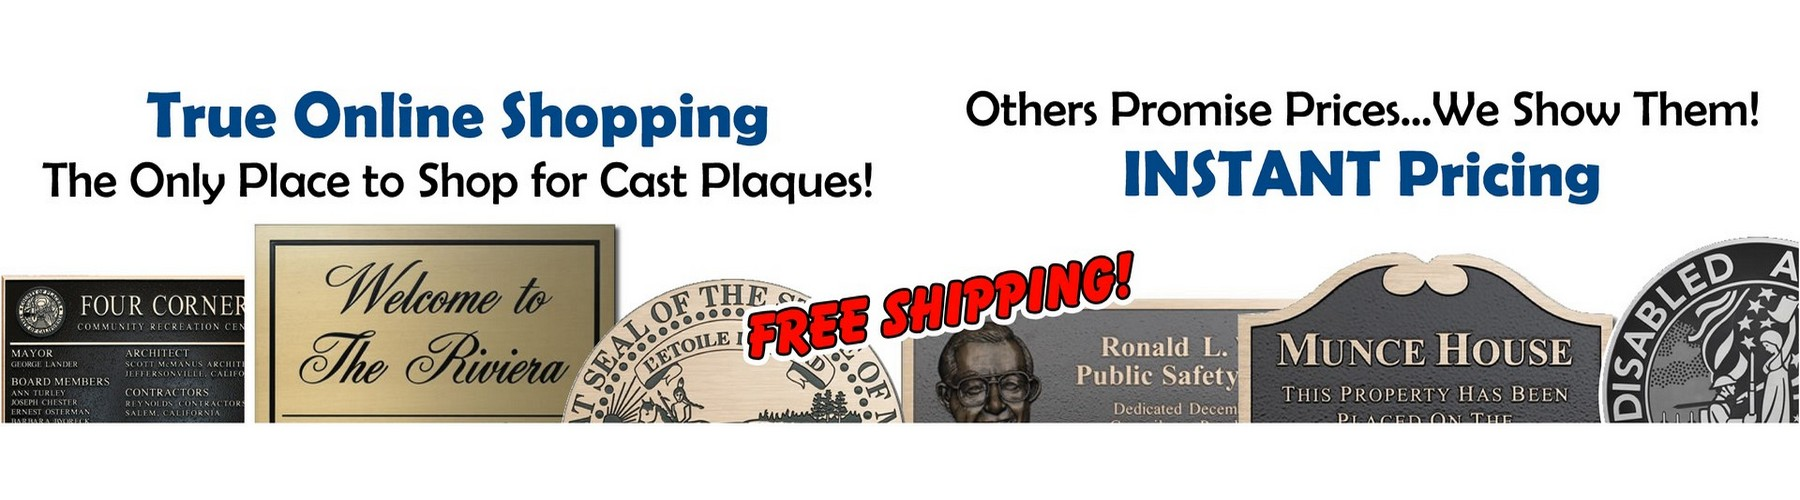 The only place to shop for cast bronze plaques. Free shipping!